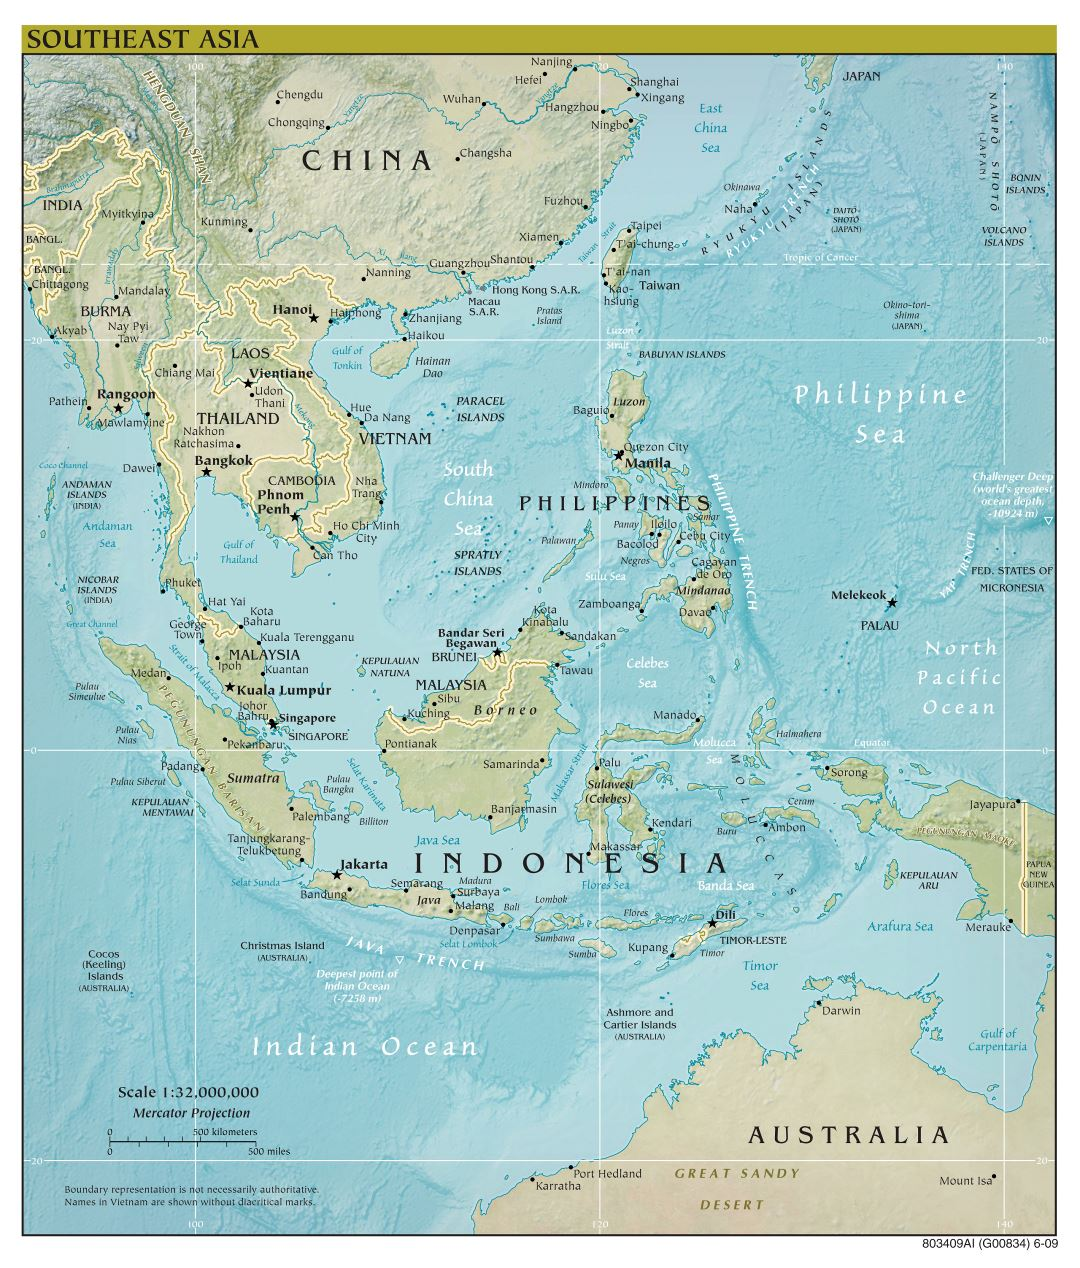 Large scale political map of Southeast Asia with relief and capitals - 2009